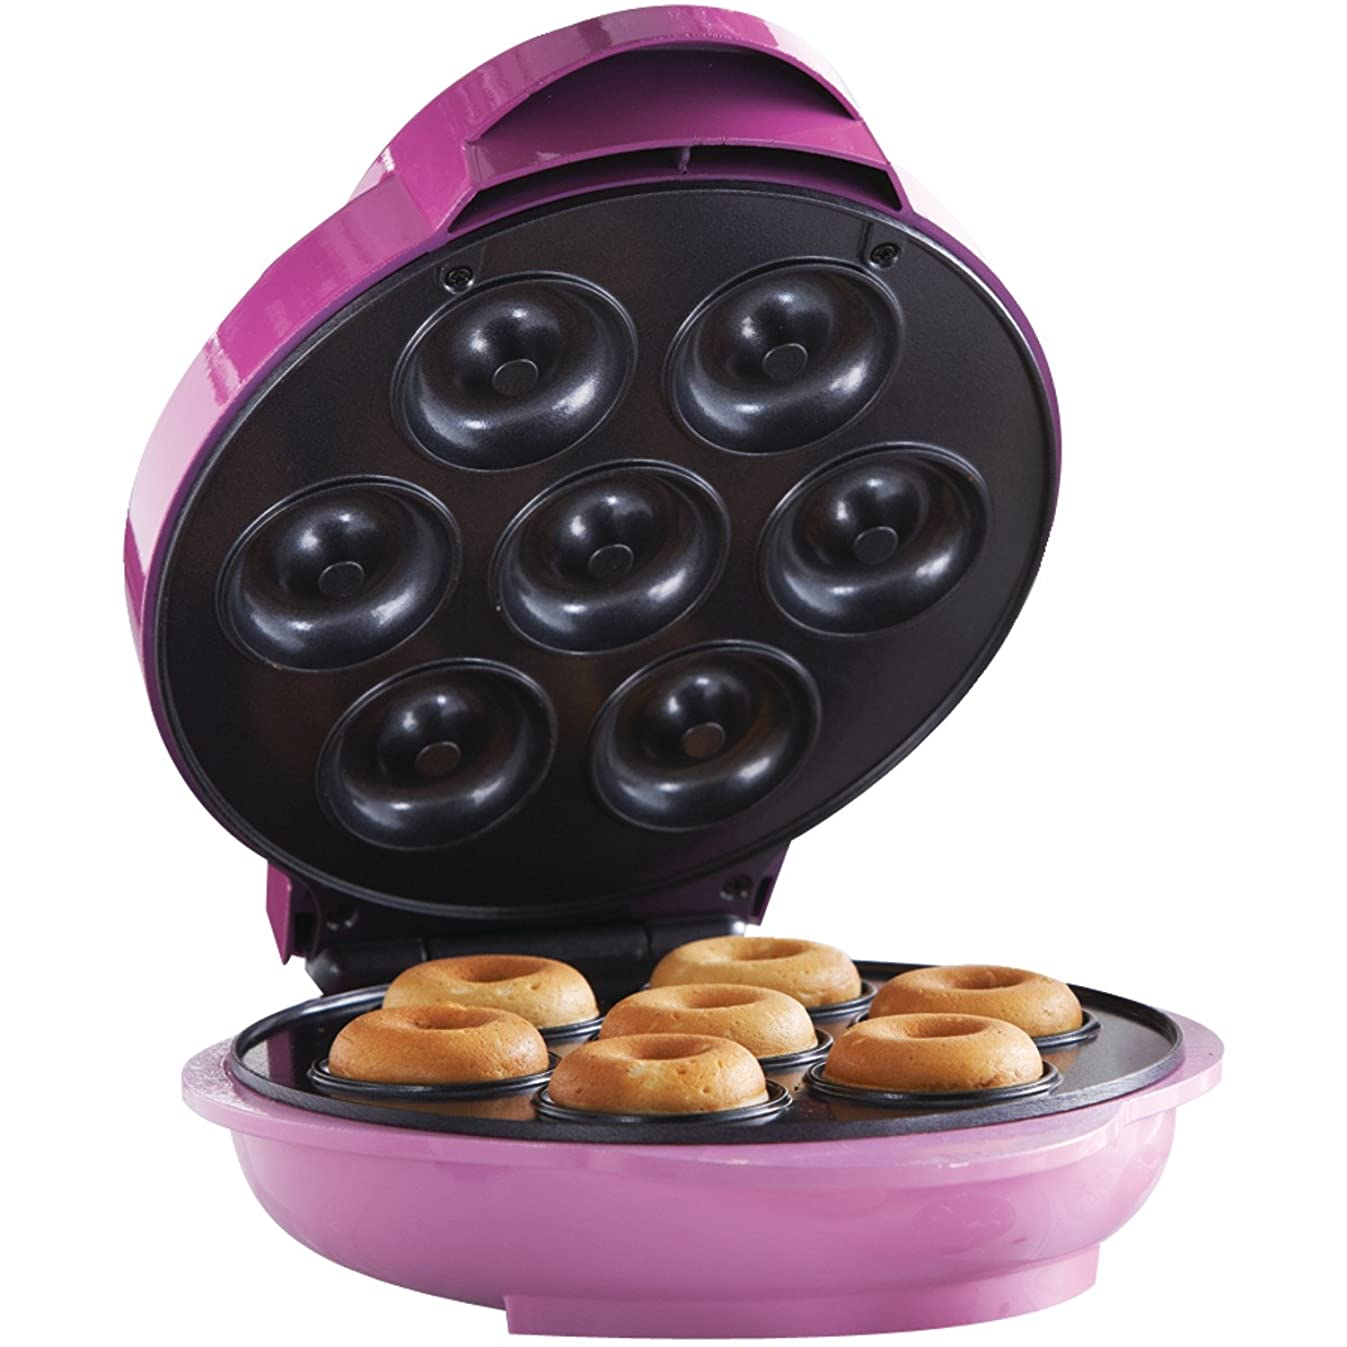 Brentwood RA25986 Appliances TS-250 Electric Food (Mini Donut Maker), One-Size, Pink